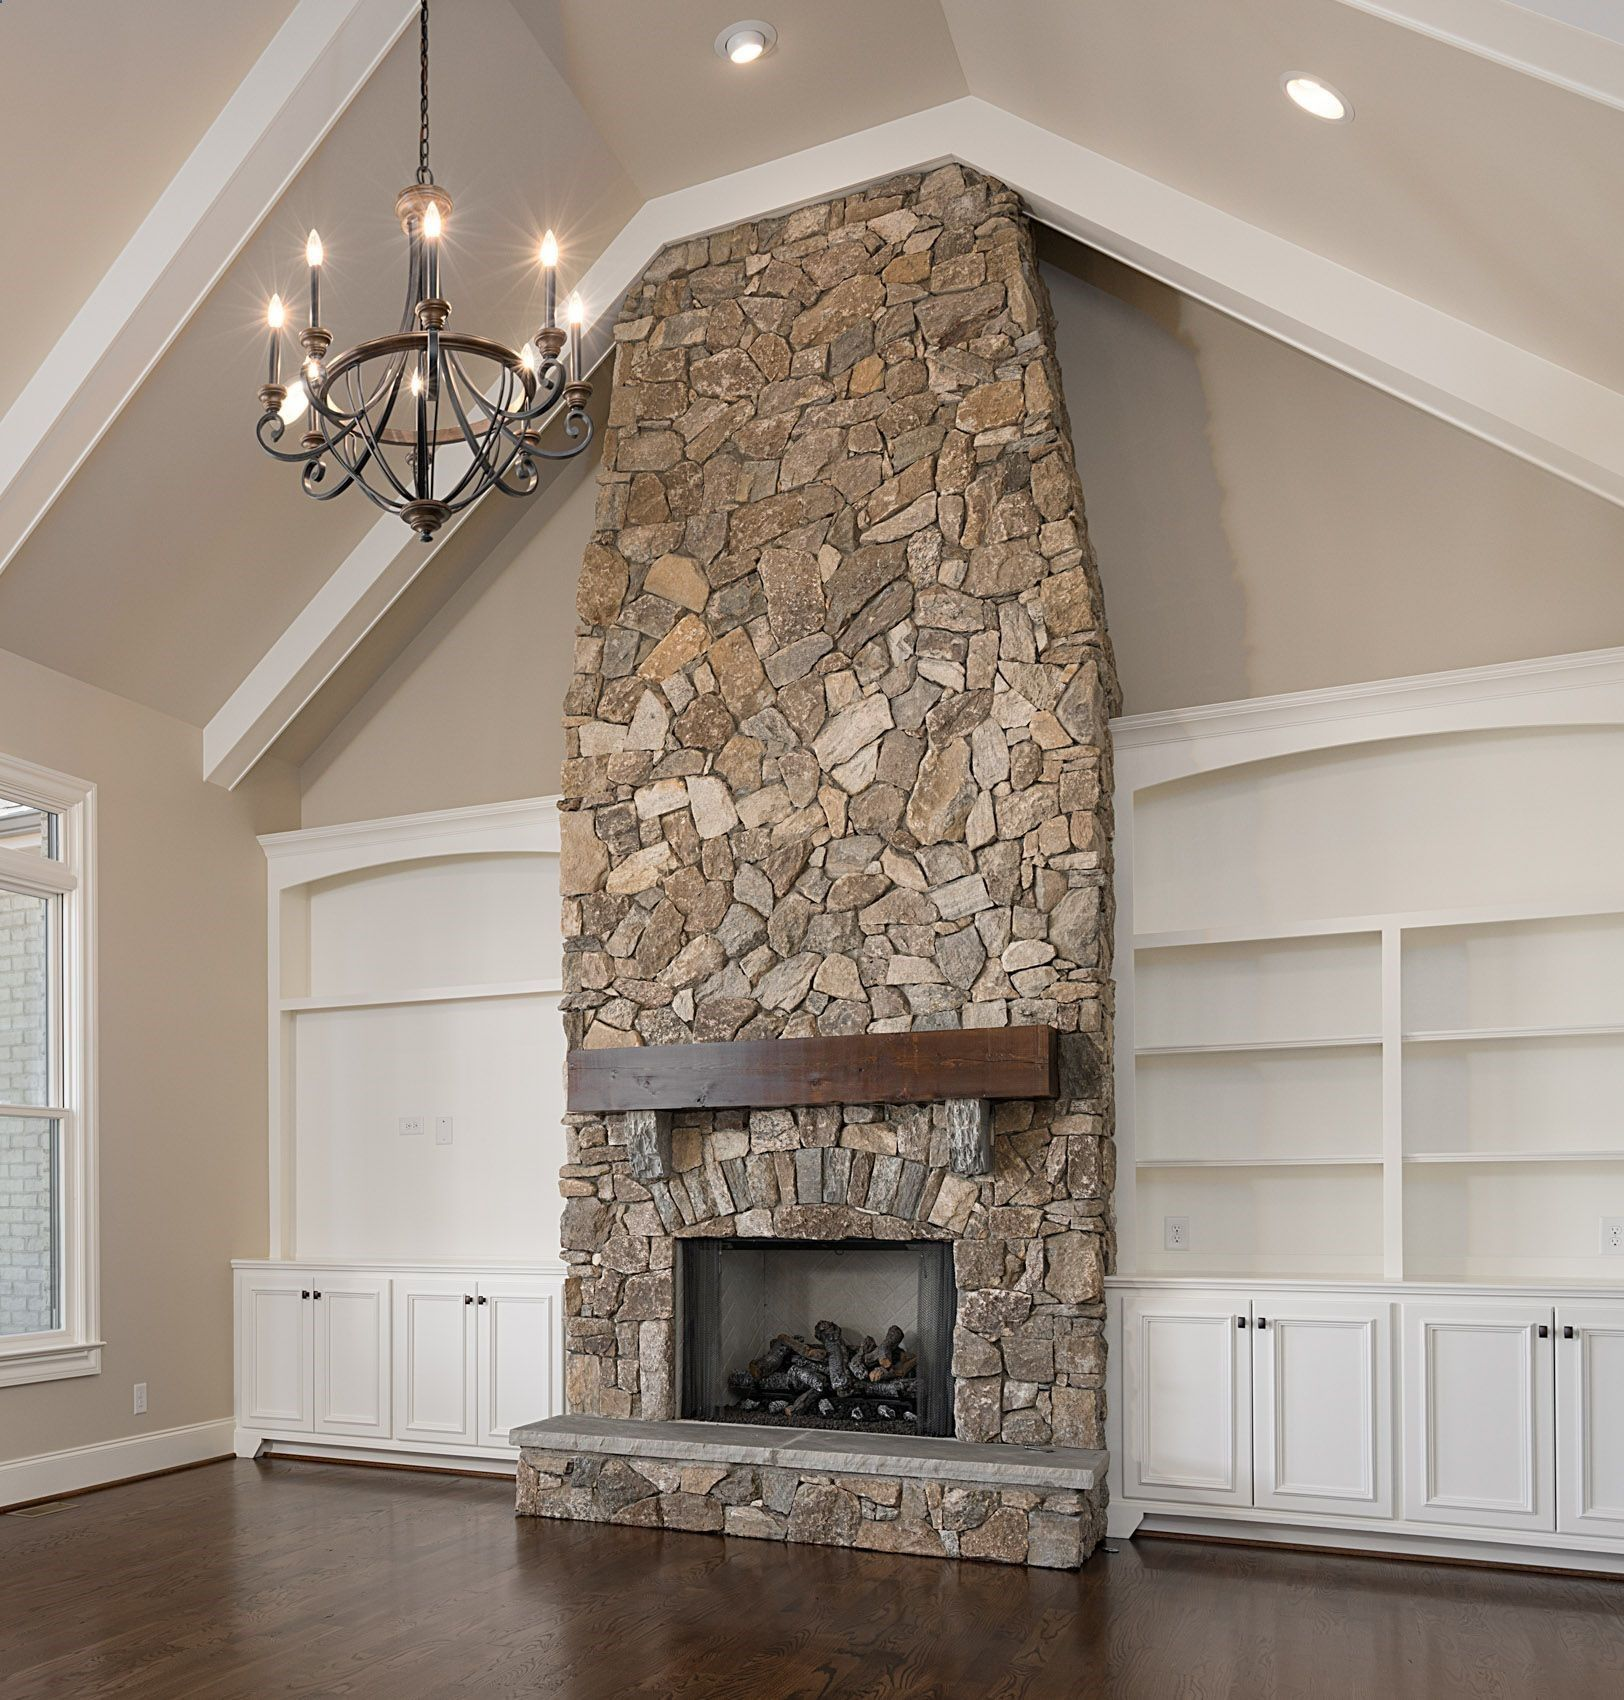 The Perfect Living Room Vaulted Ceilings And An Iron Chandelier Floor To Ceiling Stone Fireplace With Farmhouse Style Mantle Custom Built Shelves On Either S Fireplace Built Ins Farm House Living